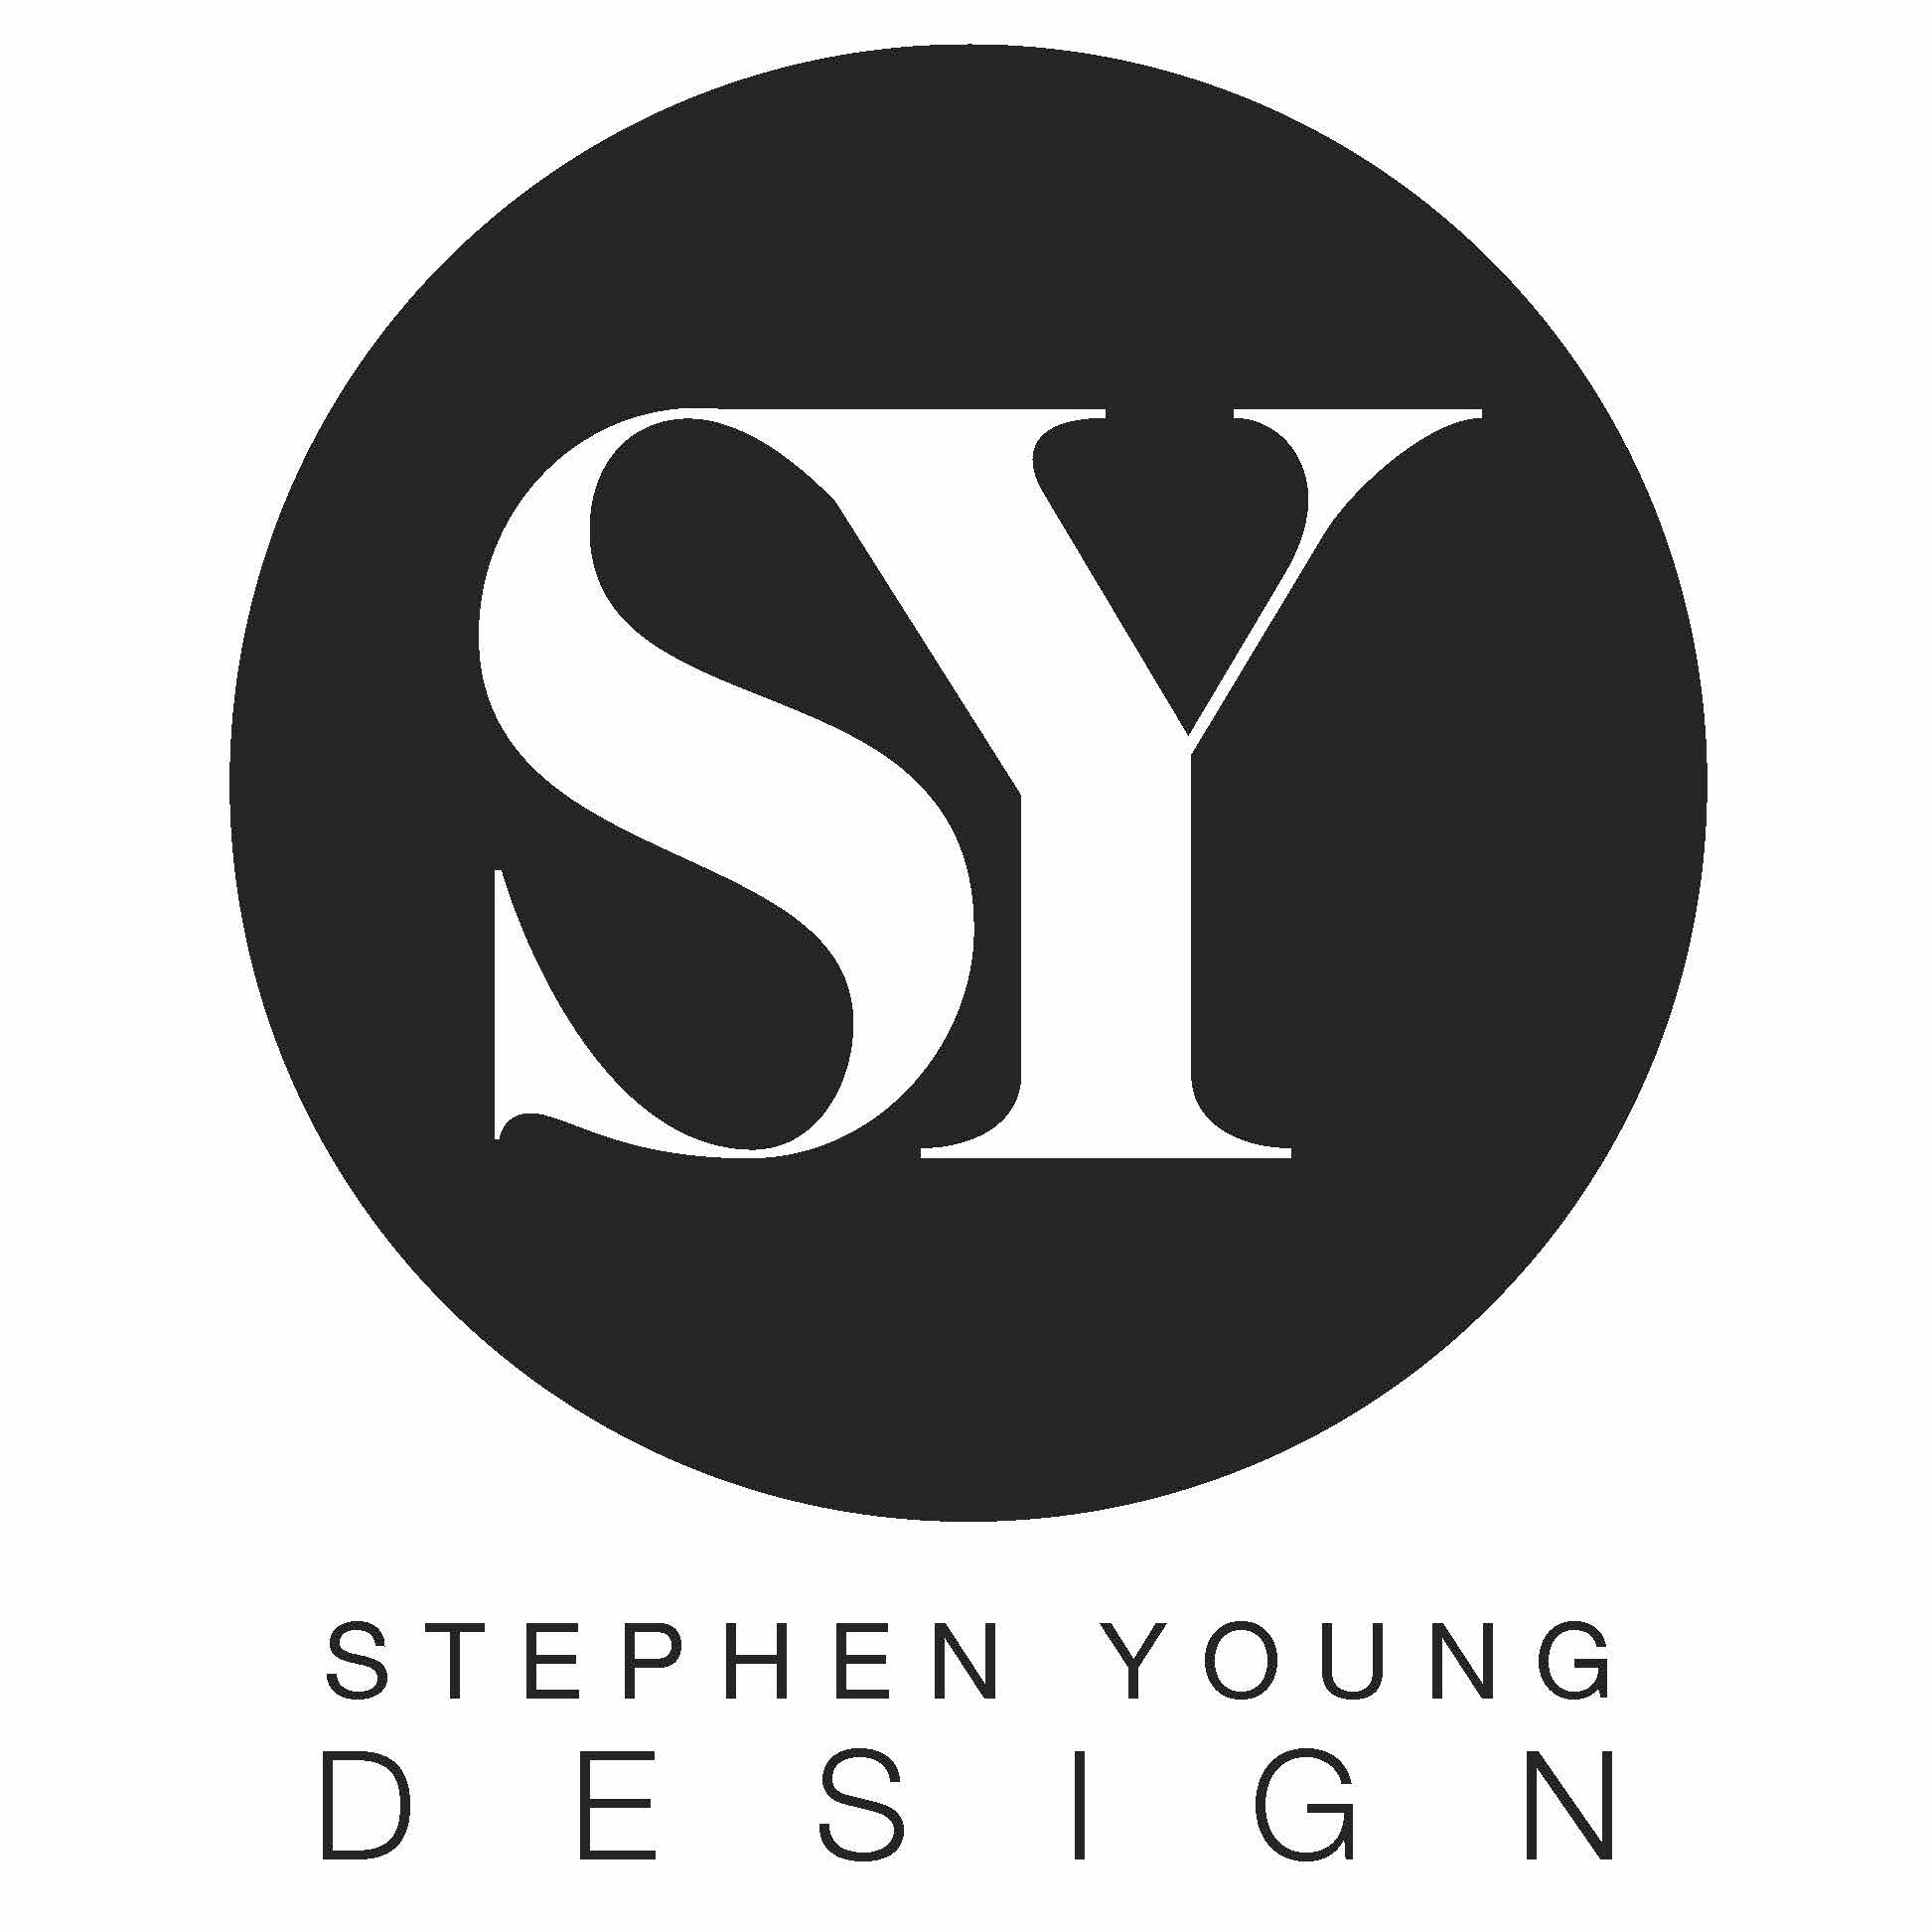 Stephen Young Design - SY Logo_6.3.19.jpg